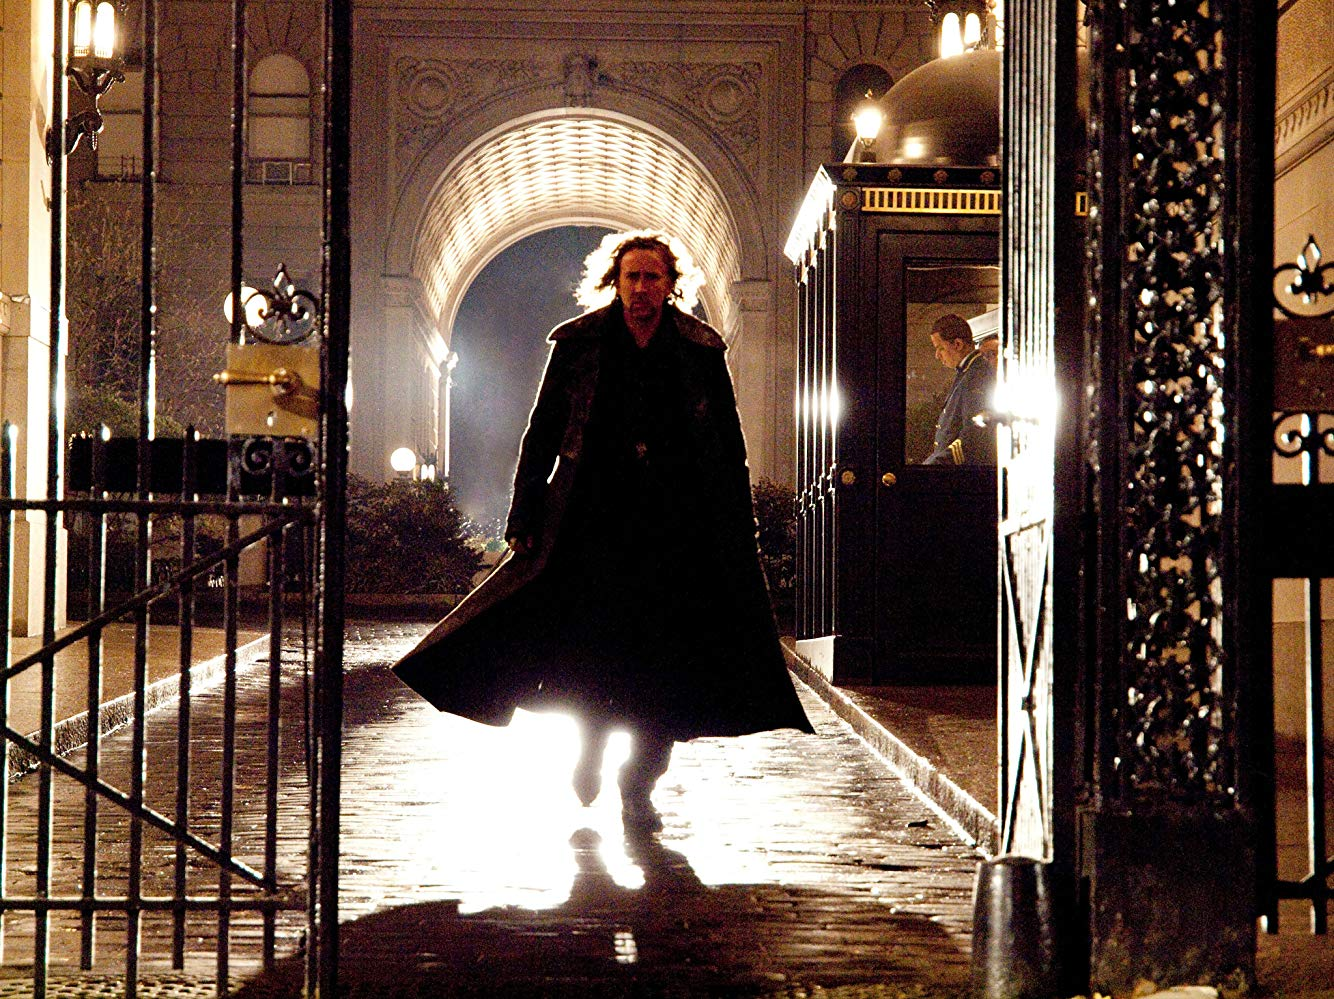 Nicolas Cage as the sorcerer Balthazar in The Sorcerer's Apprentice (2010)